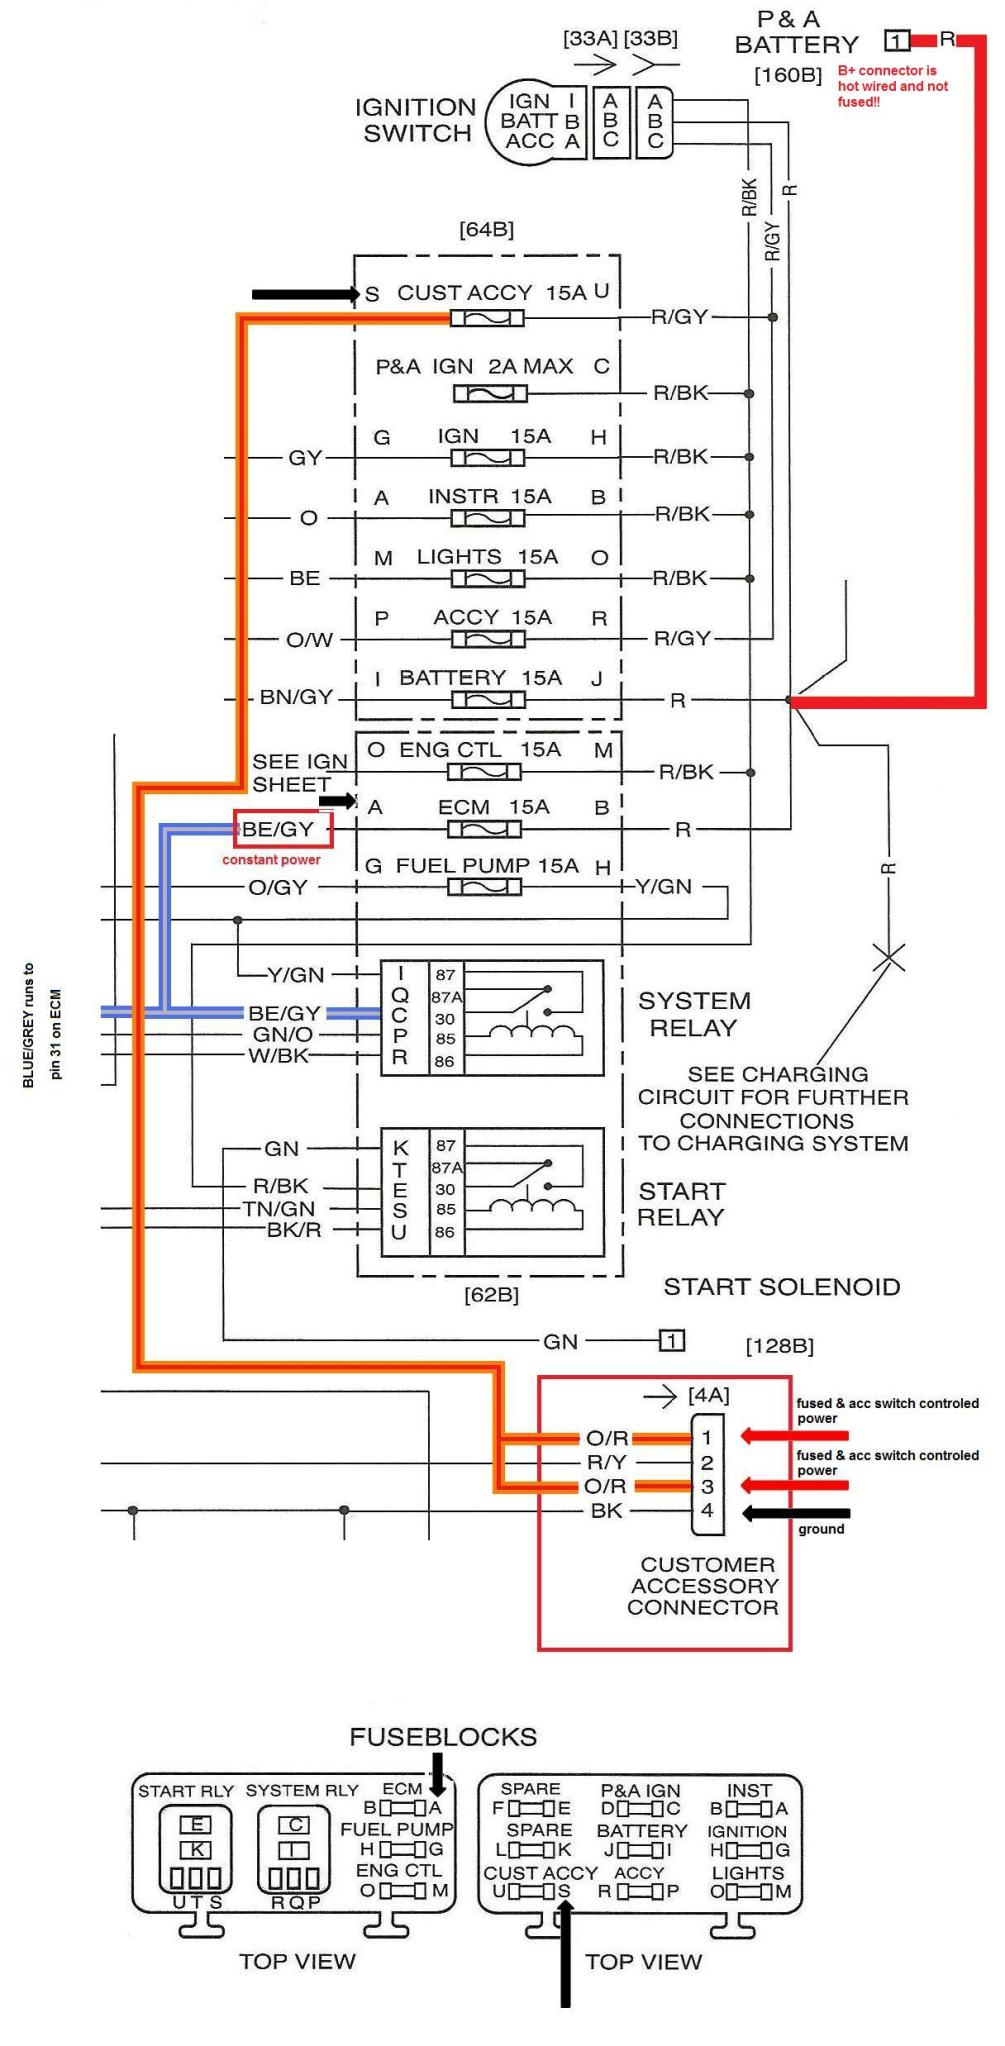 hight resolution of harley wiring diagram wires wiring diagram blogs harley davidson wiring harness diagram harley davidson electronic throttle wiring diagram